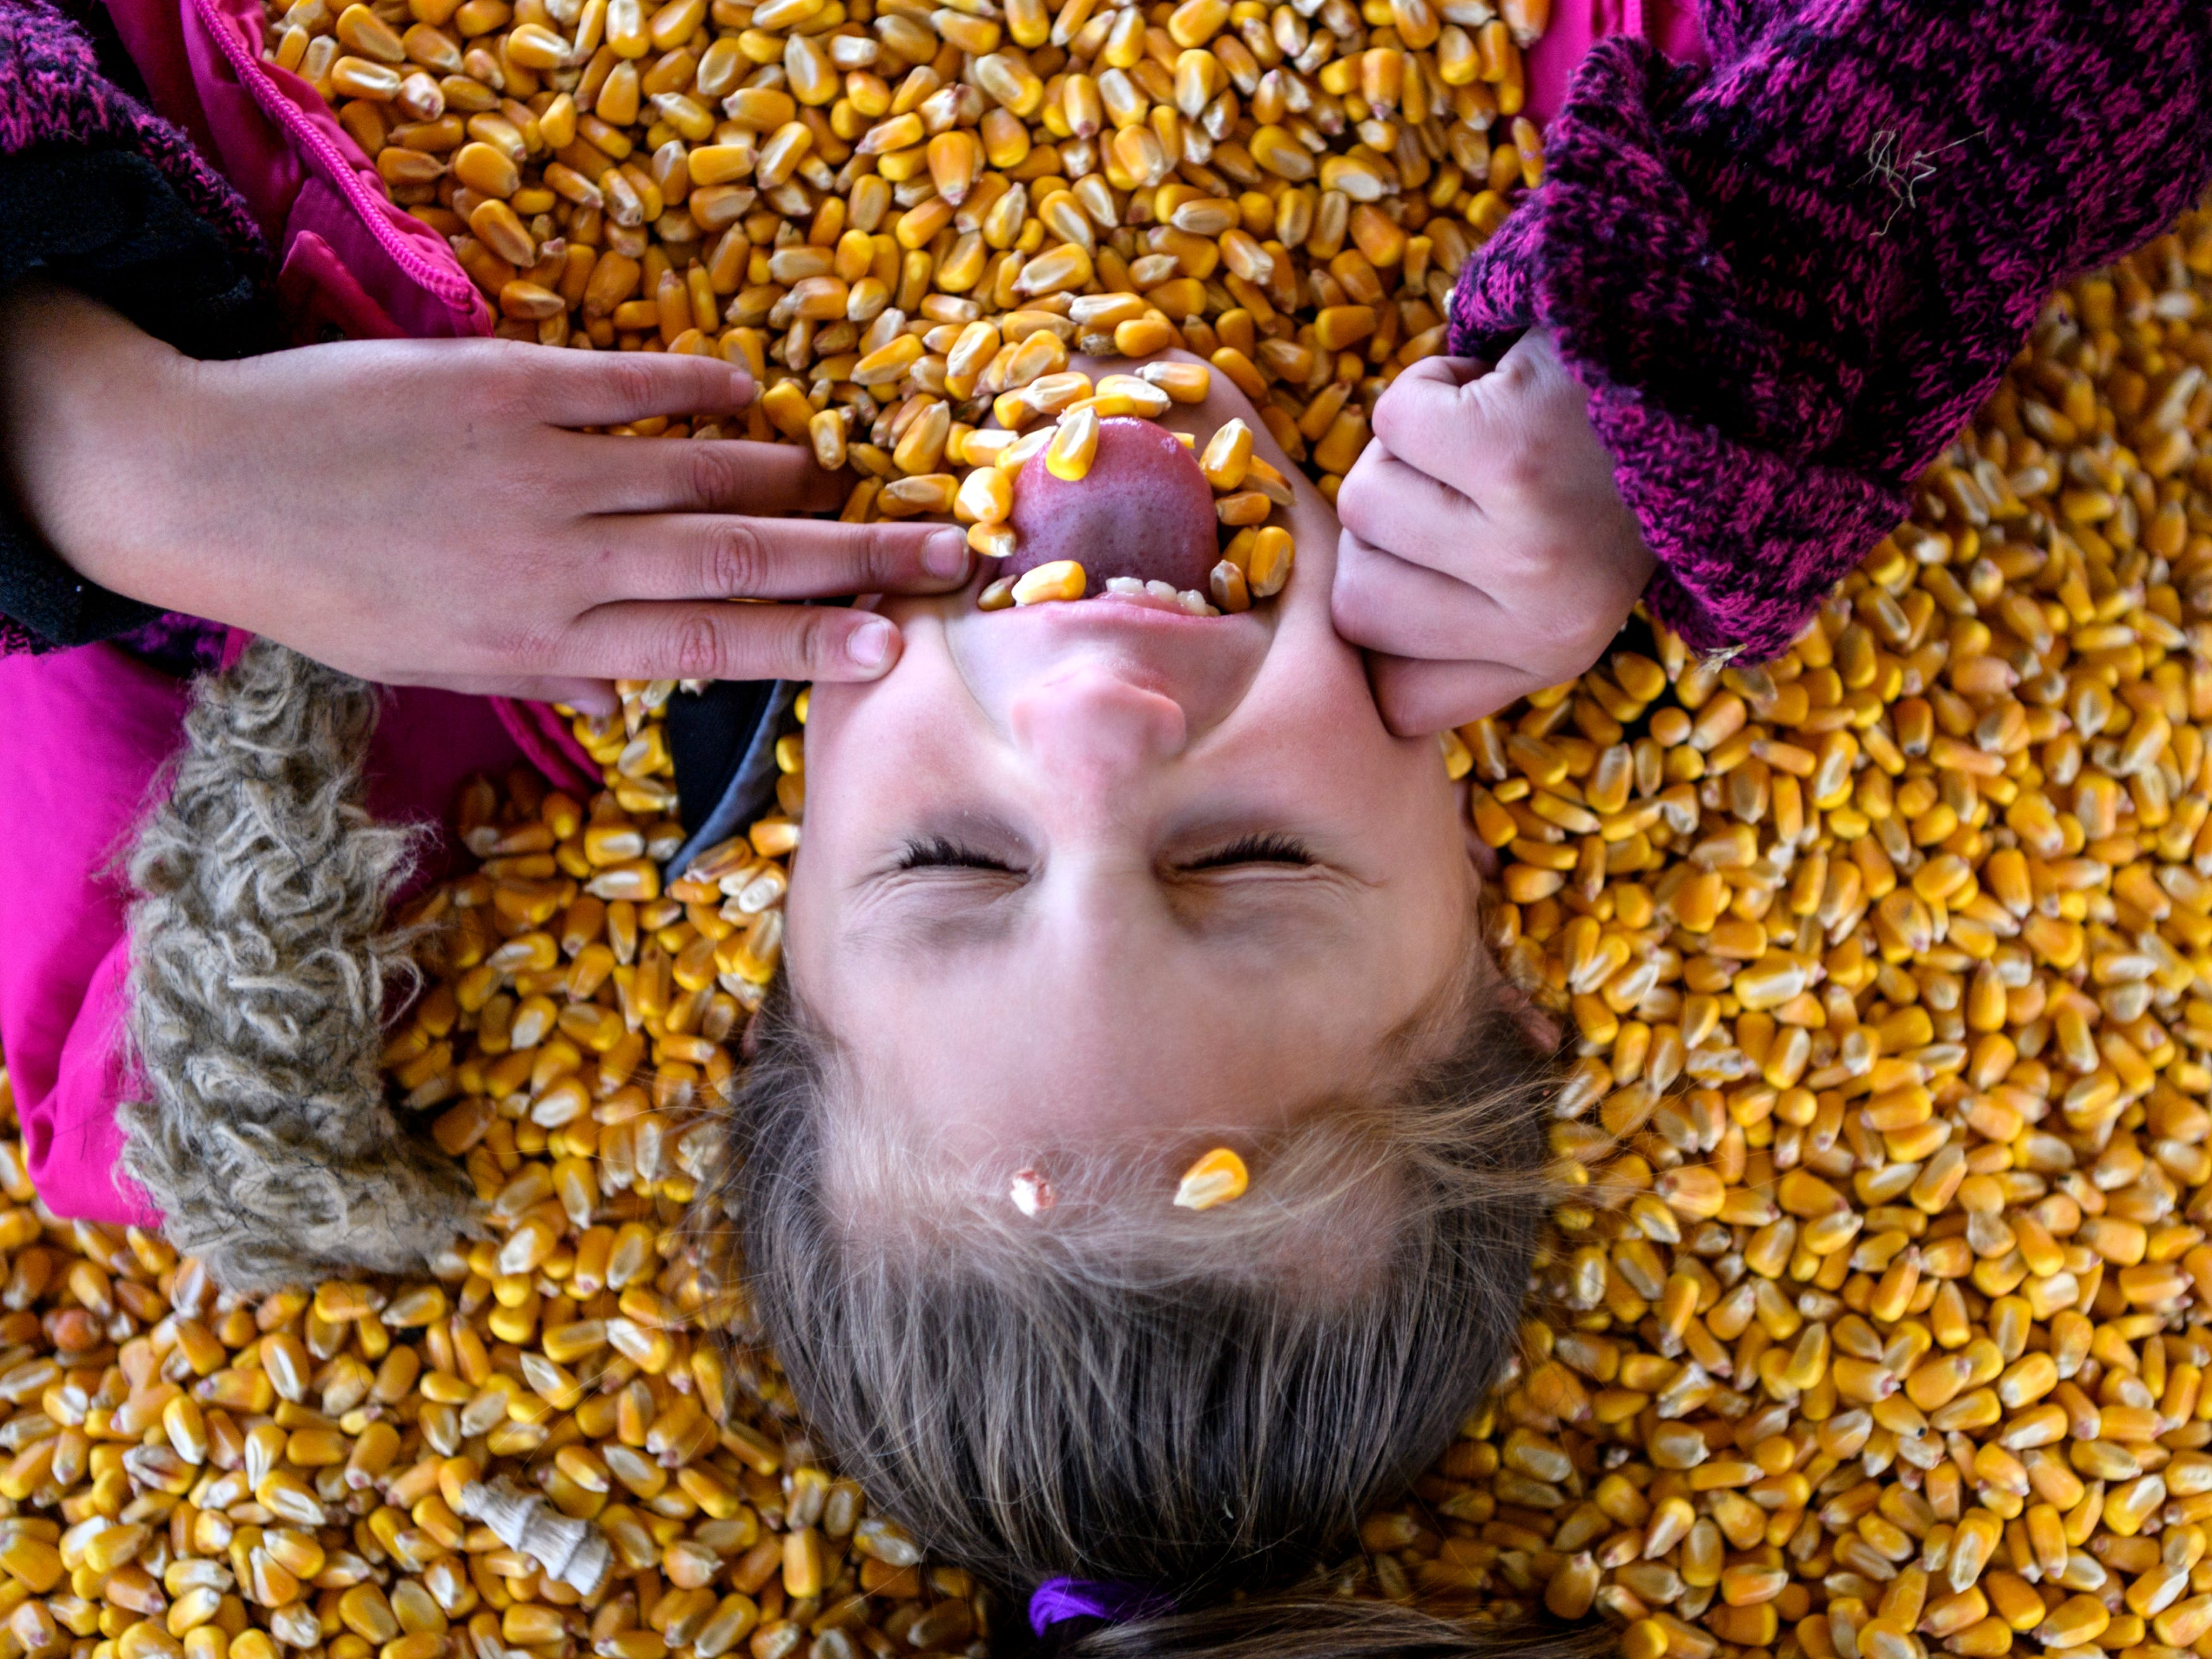 Aniya Connolly, a first grade student from Glenwood Leadership Academy in Evansville, accidentally gets corn in her mouth while pretending to swim and bury herself in the large pool of dried kernels at Cate's Farm Corn Maze and Pumpkin Patch in Henderson, Ky., Friday, Oct. 12, 2018.